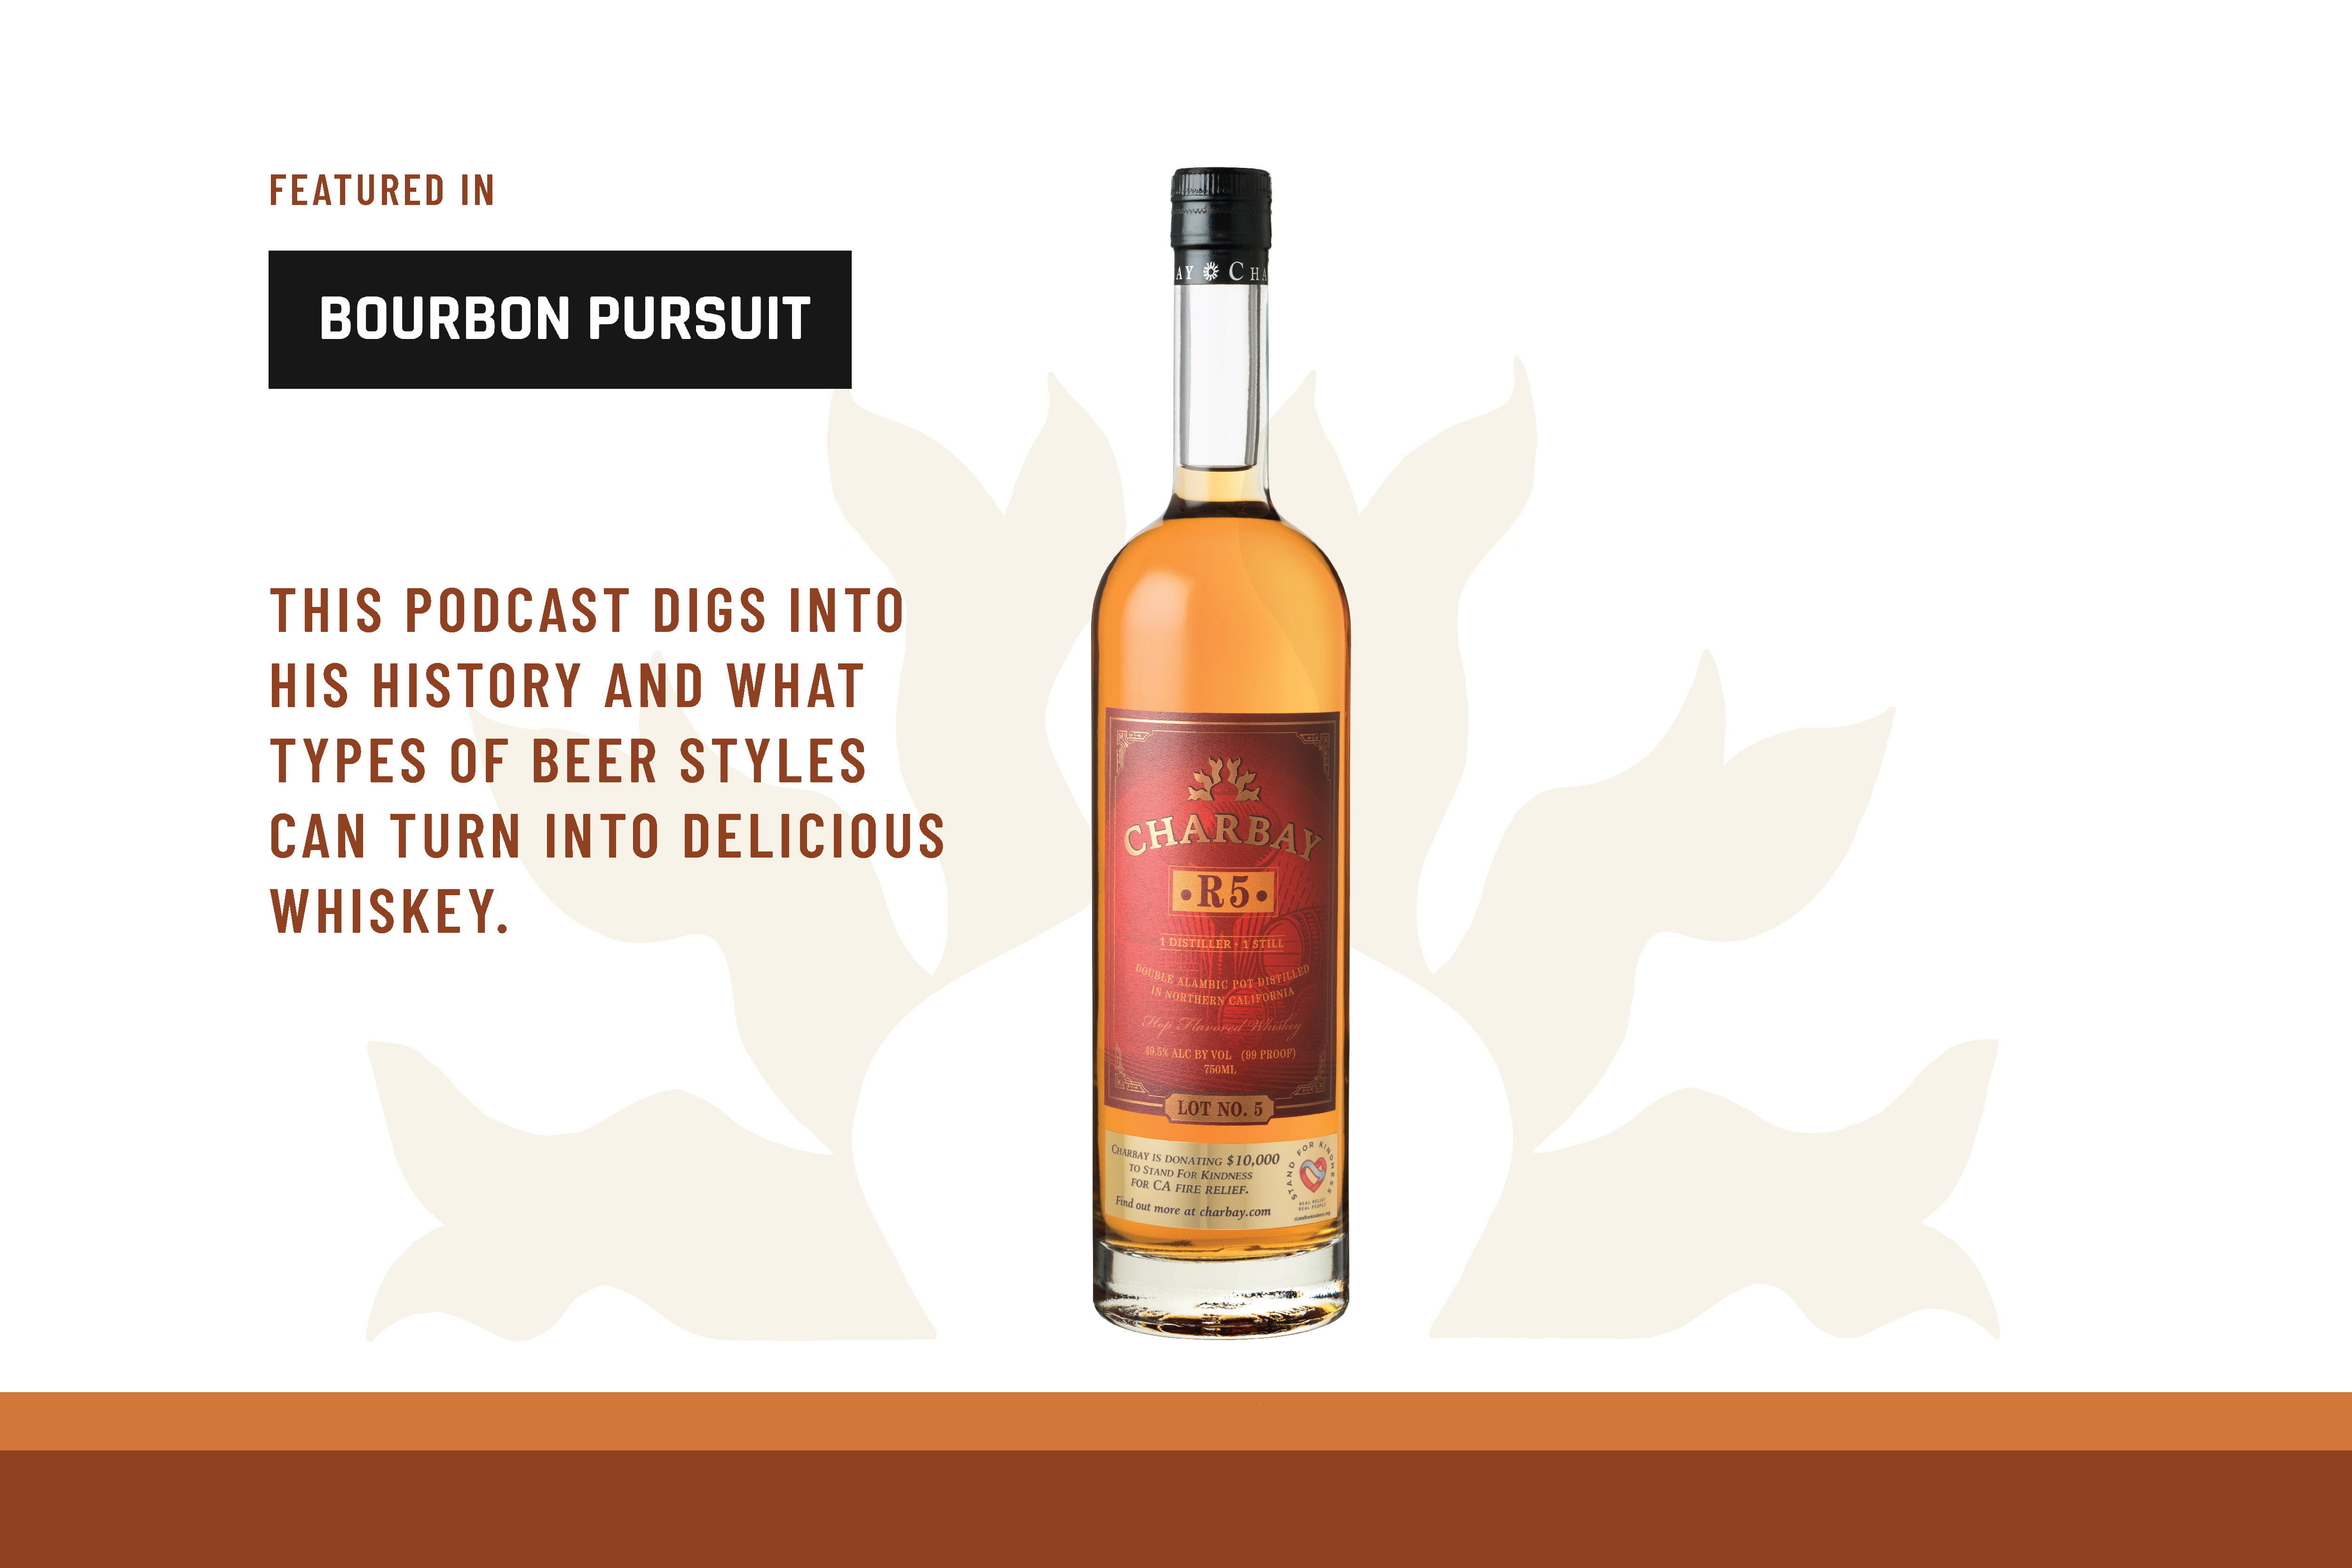 Charbay Whiskey Bourbon Pursuit Podcast